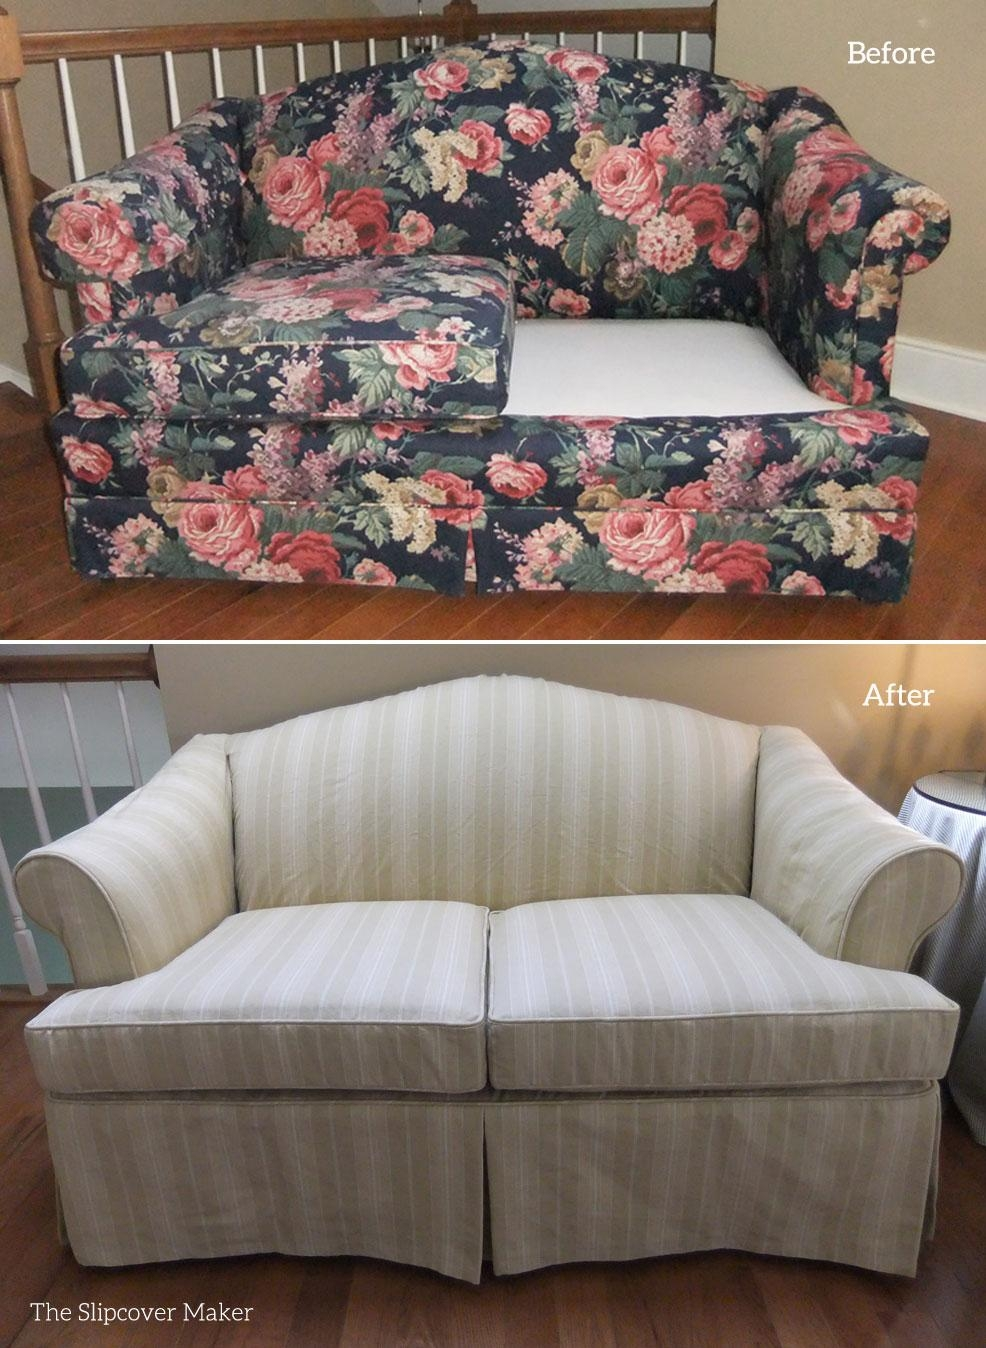 Striped Slipcovers | The Slipcover Maker Intended For Striped Sofa Slipcovers (Image 17 of 20)